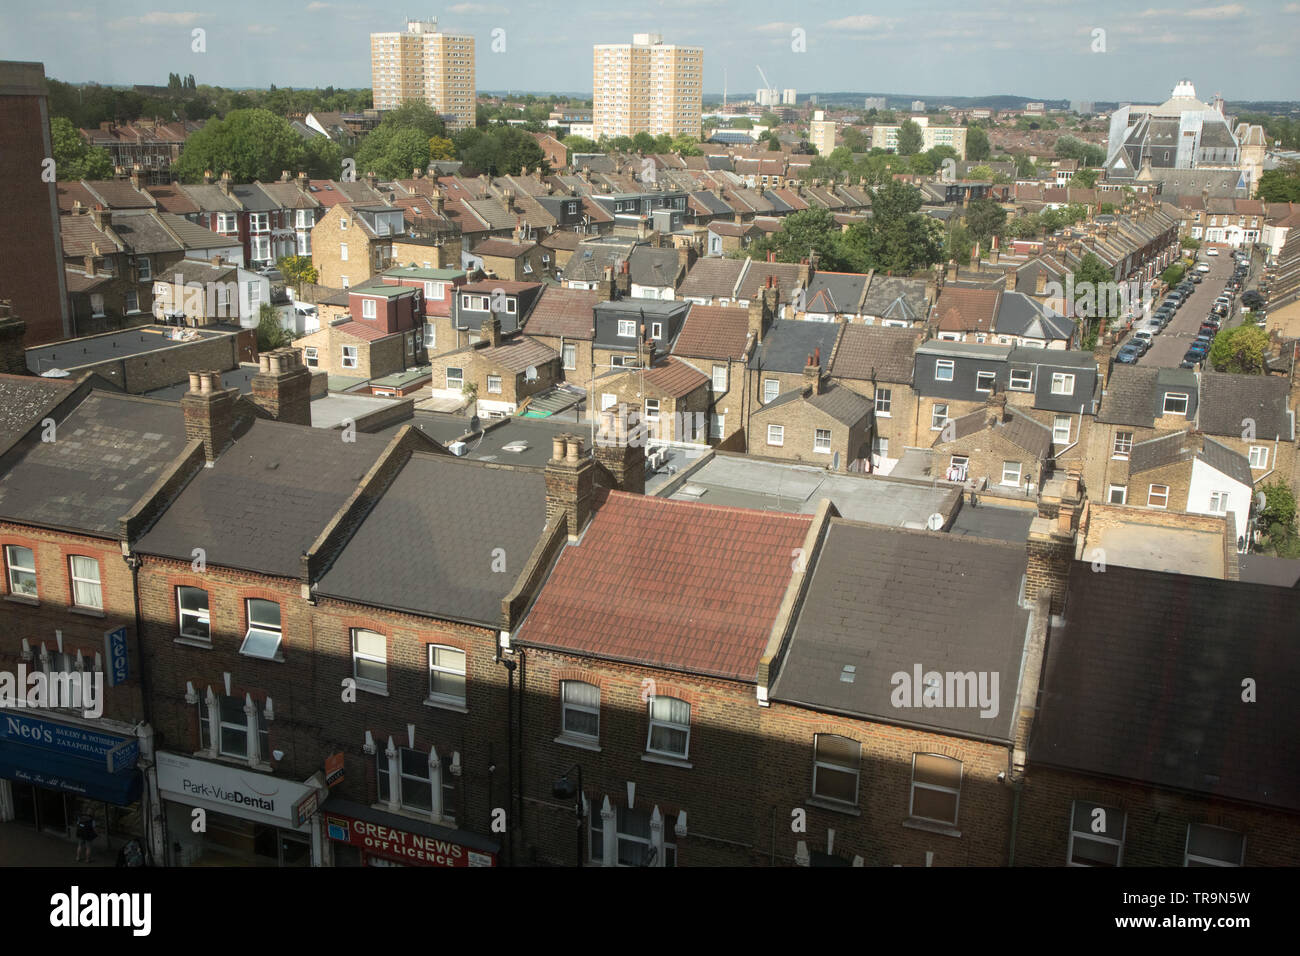 A general view of housing in houses and flats in Wood Green, North London Stock Photo